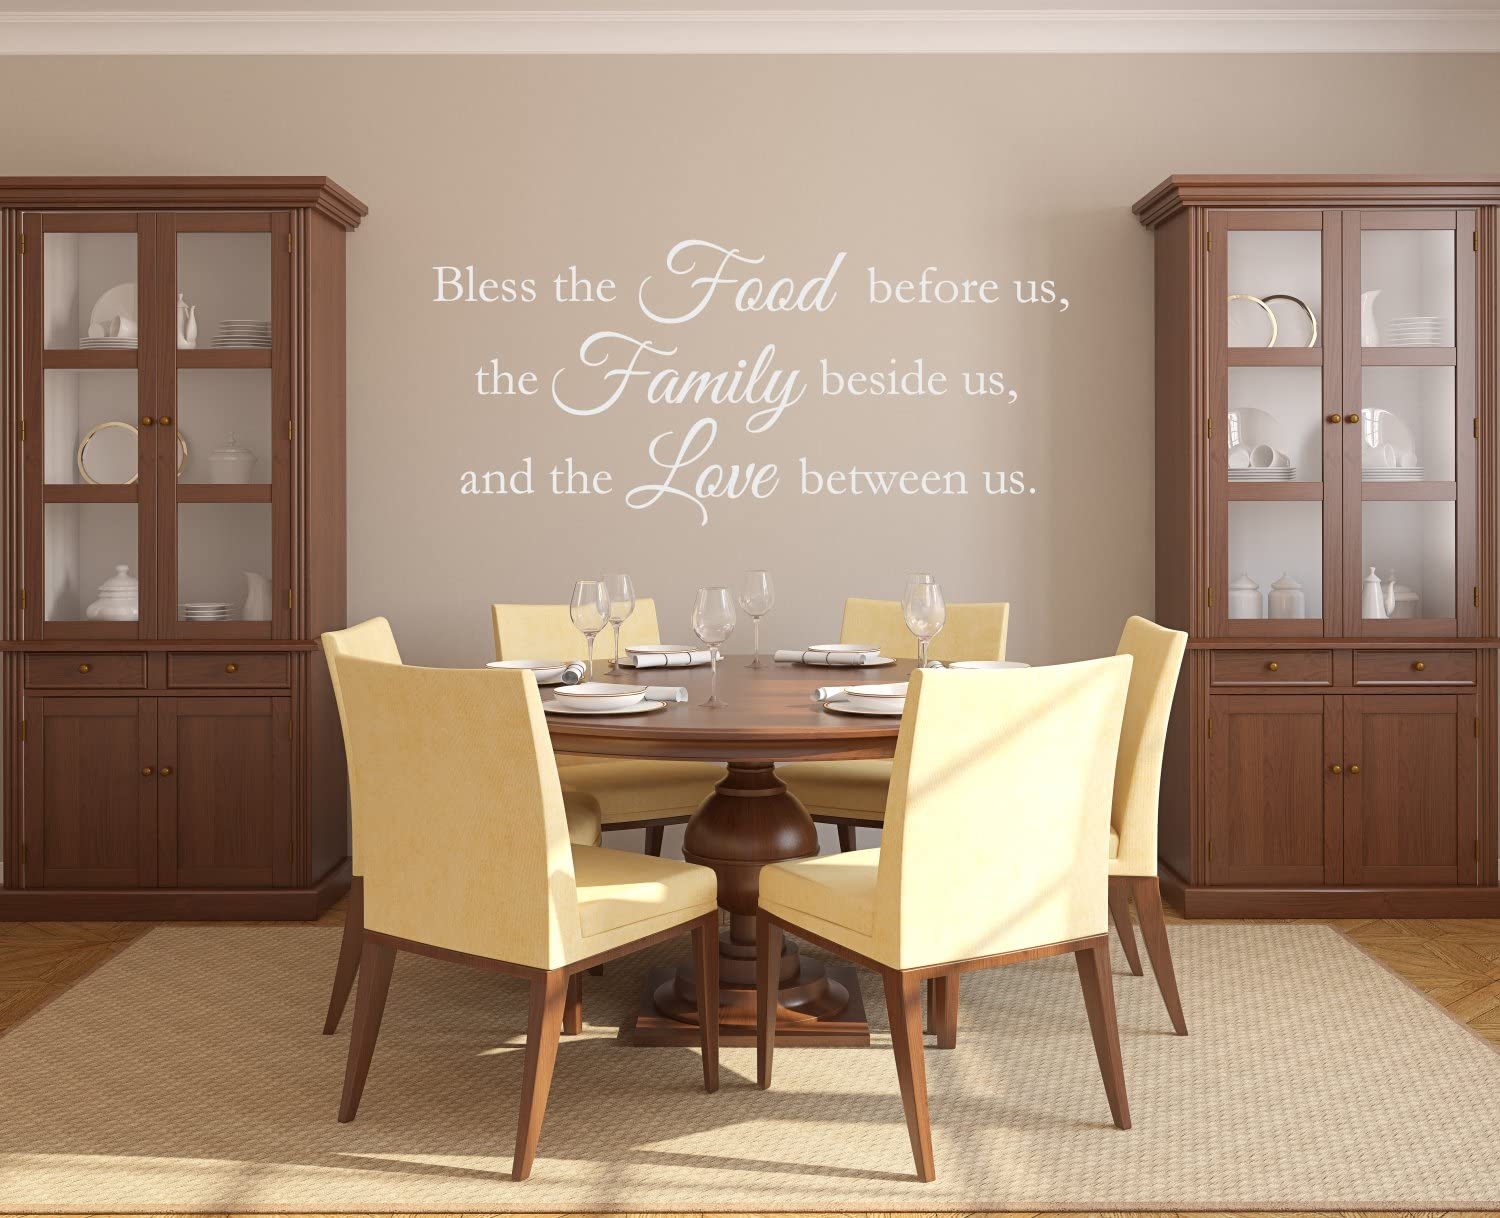 """The Vinyl Design Company Bless the Food before us, Family beside us, Love between us - Vinyl Wall Art Decal - 40"""" W x 18"""" H (White)"""